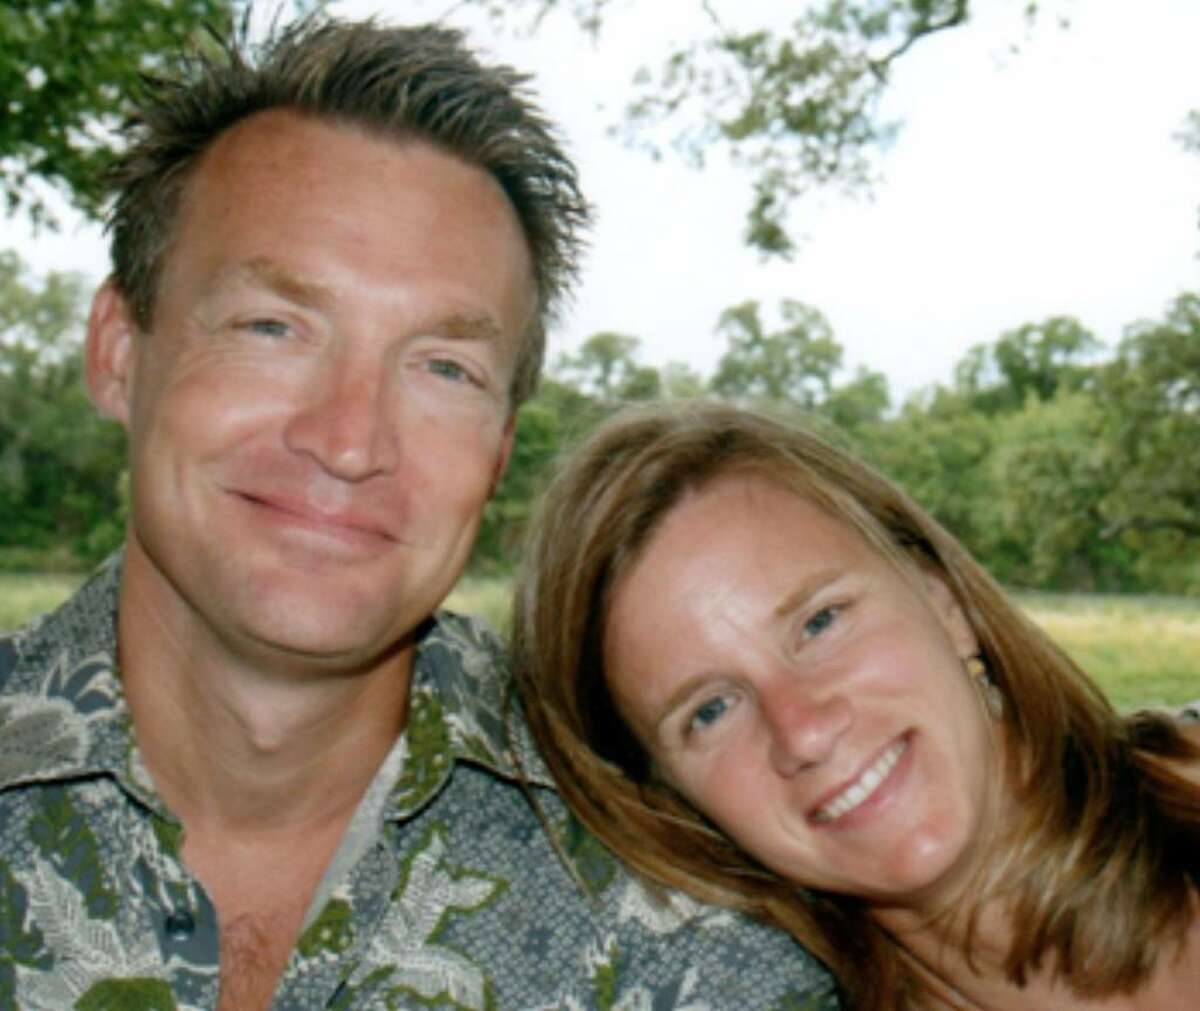 Gregory and Alexandra Bruehler were killed when a pickup hit them while they were riding their tandem bicycle on Texas 16.